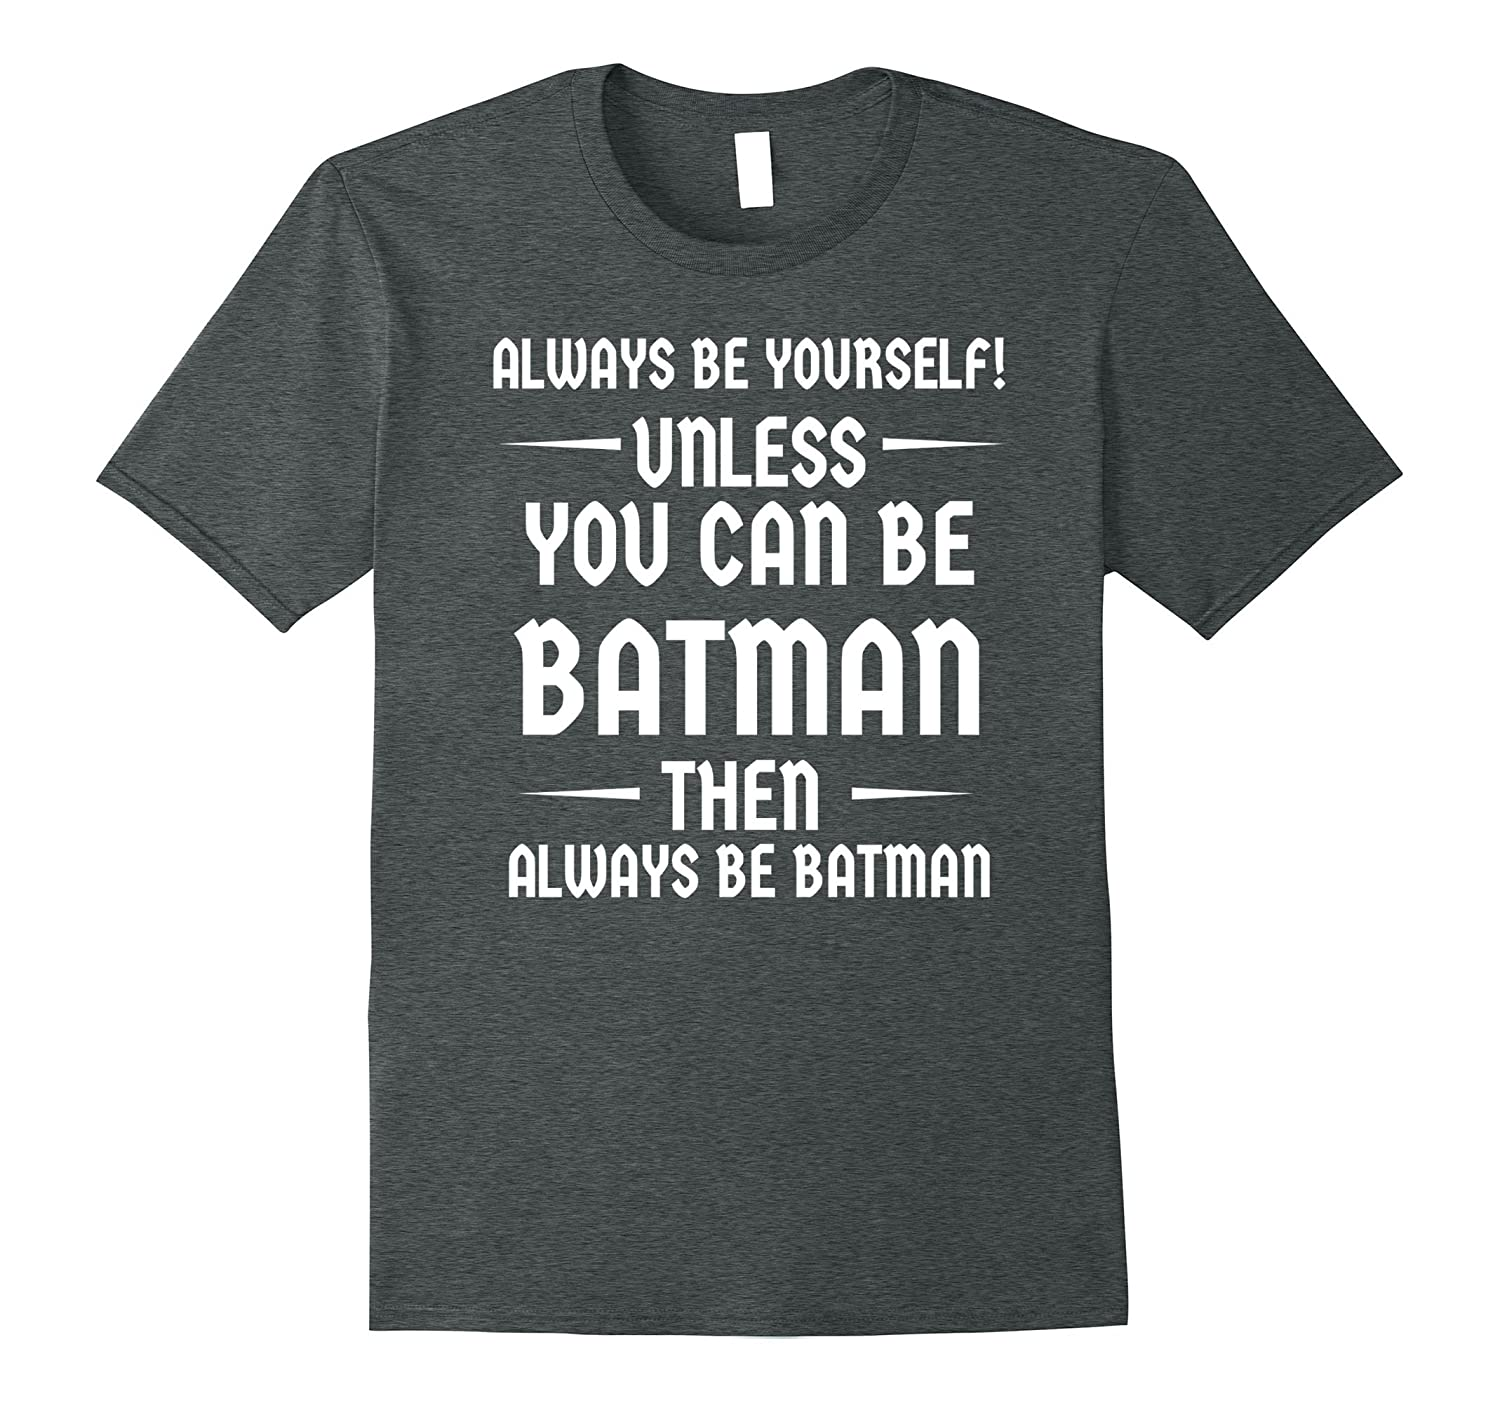 be1d1518f Batman Inspired Funny Shirt for Men Women Boys Teens-RT – Rateeshirt